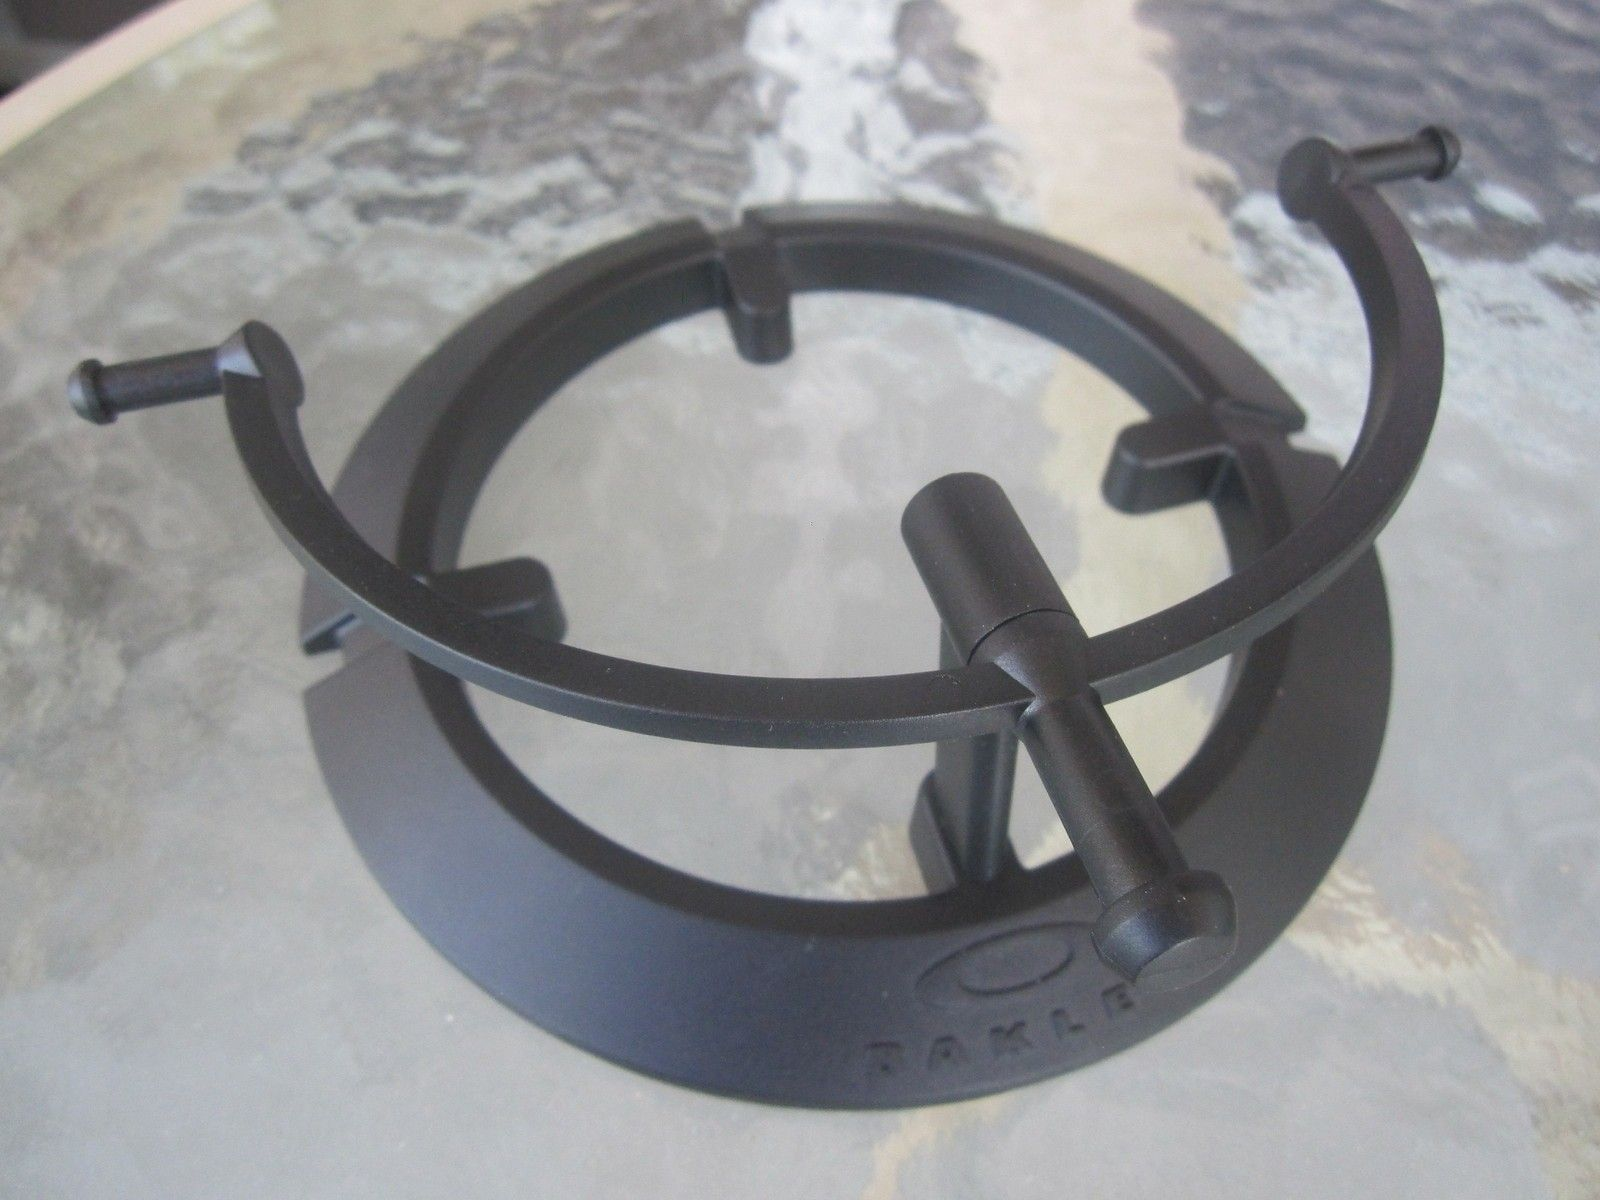 Display stands - black plastic - Priced to sell fast - All SOLD - IMG_2510.JPG